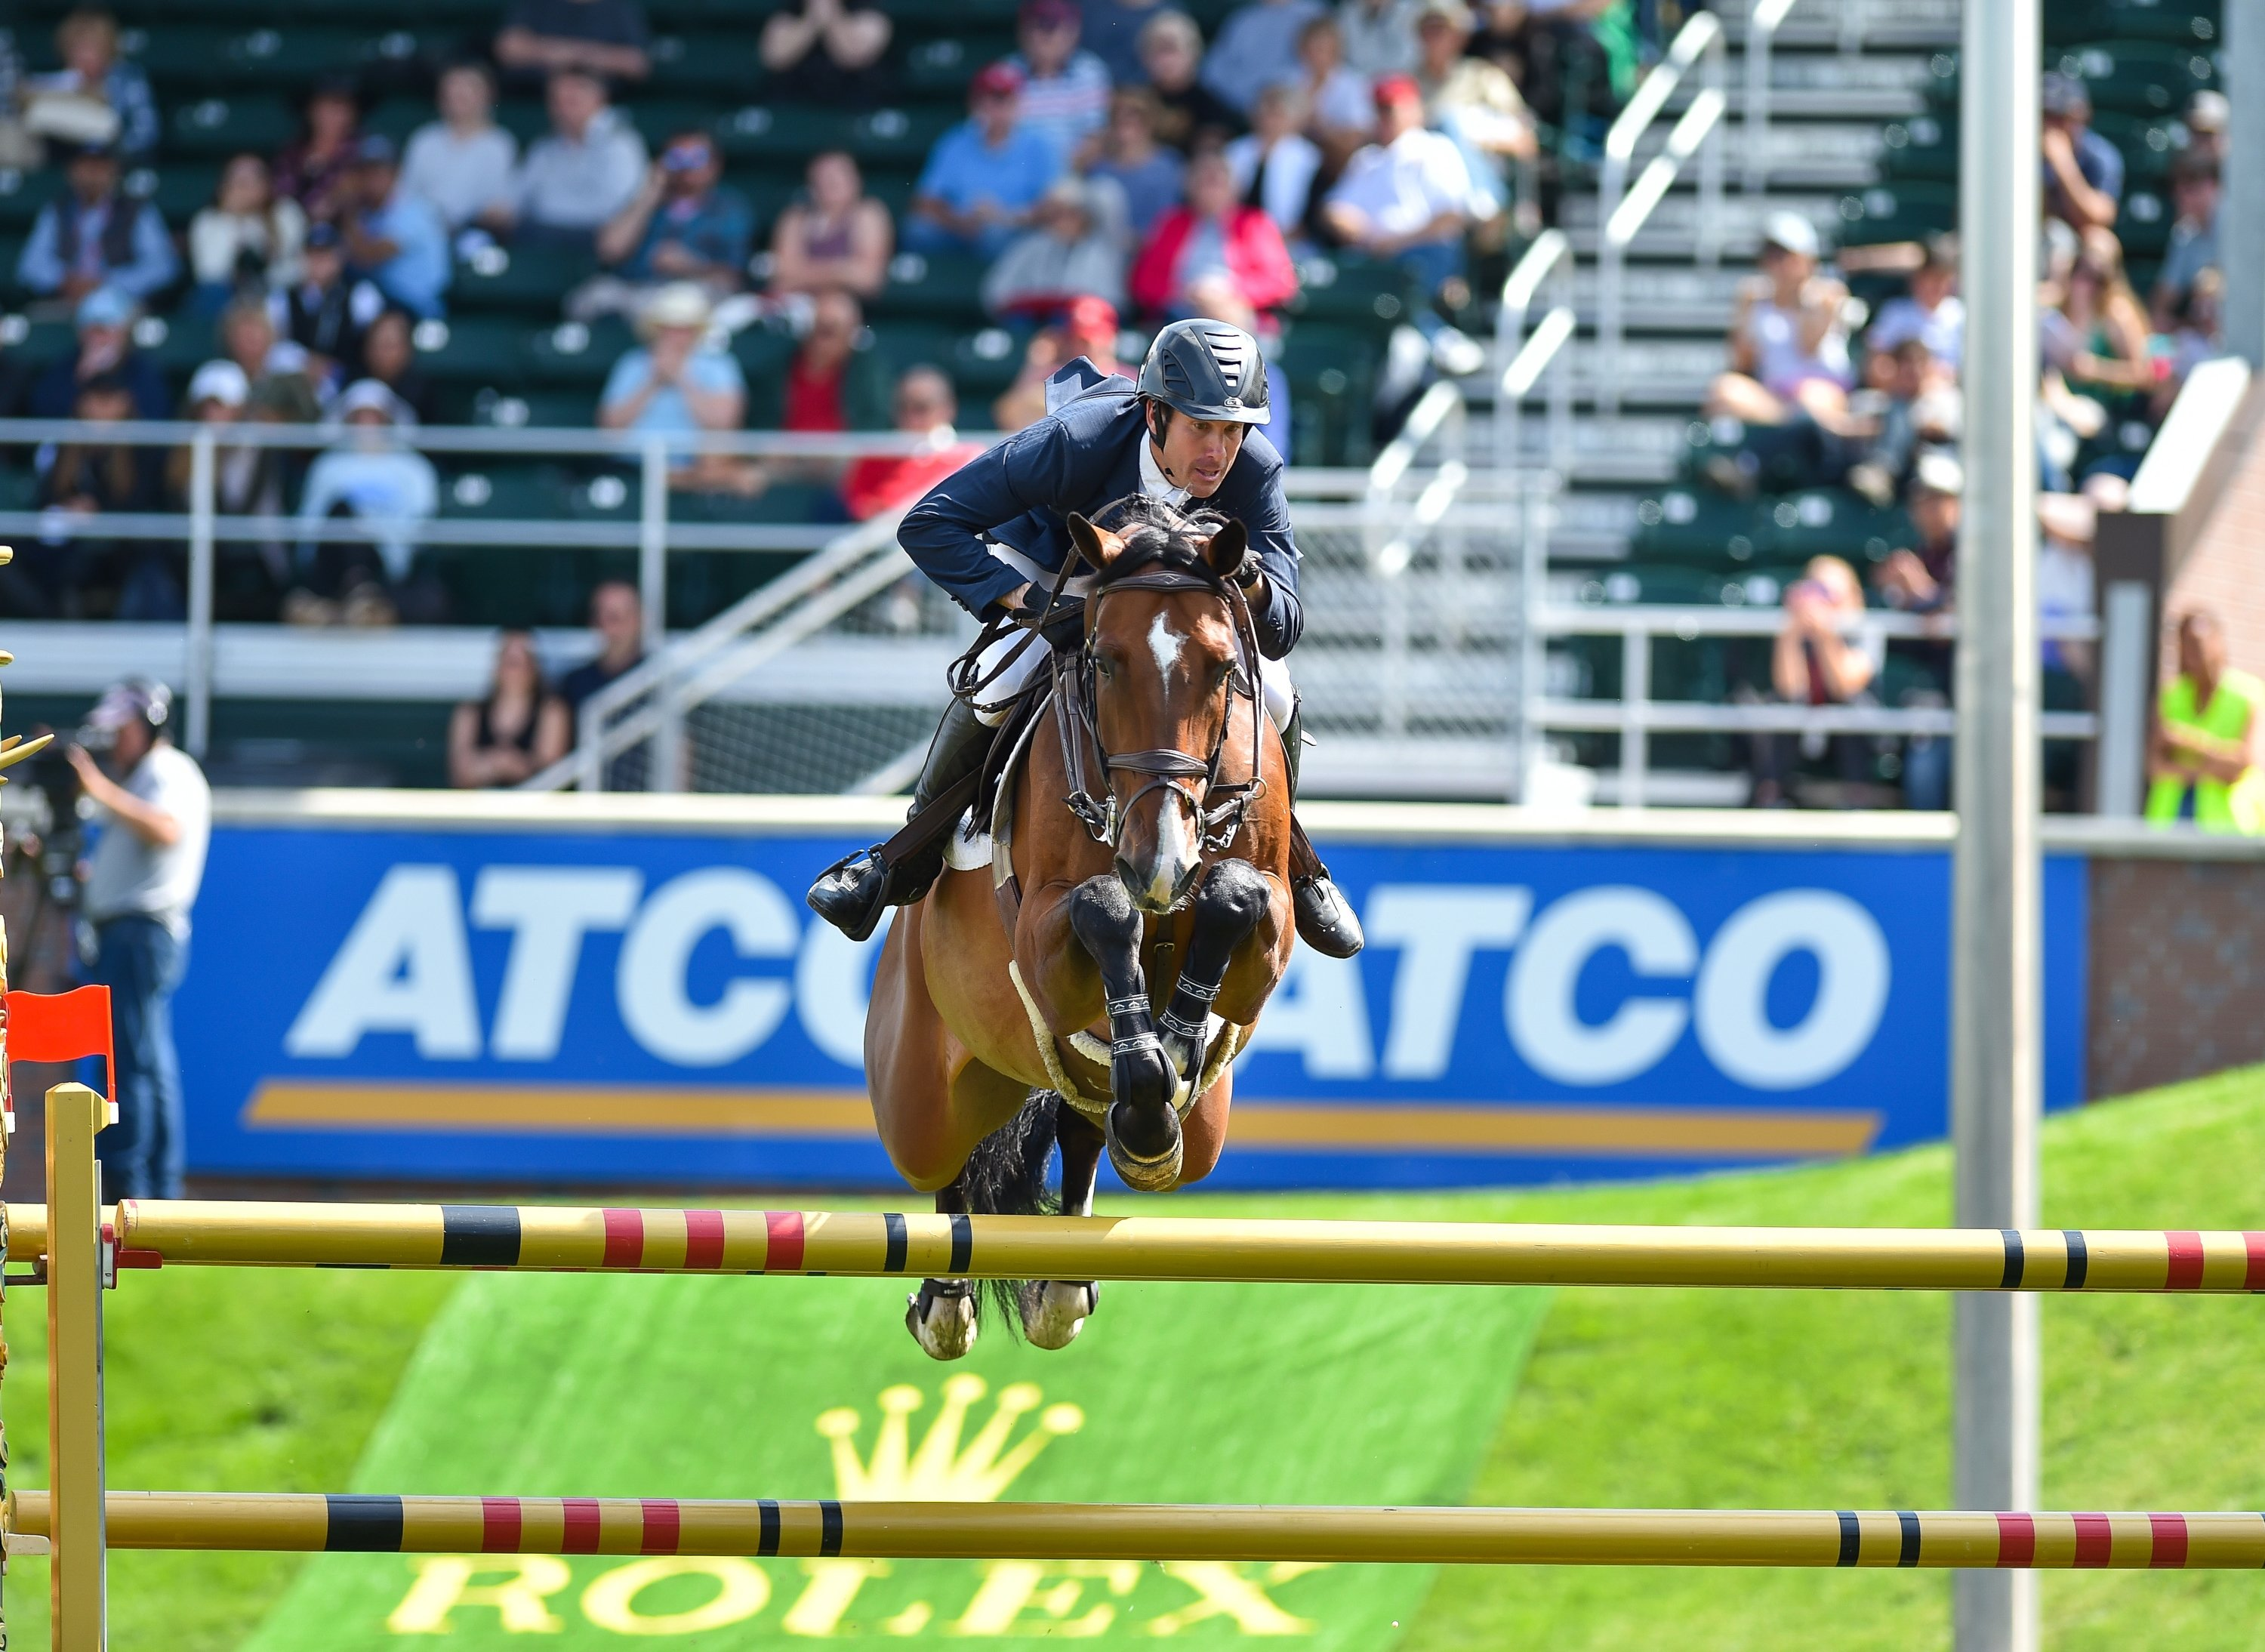 Super day for Jordan Coyle at Spruce Meadows